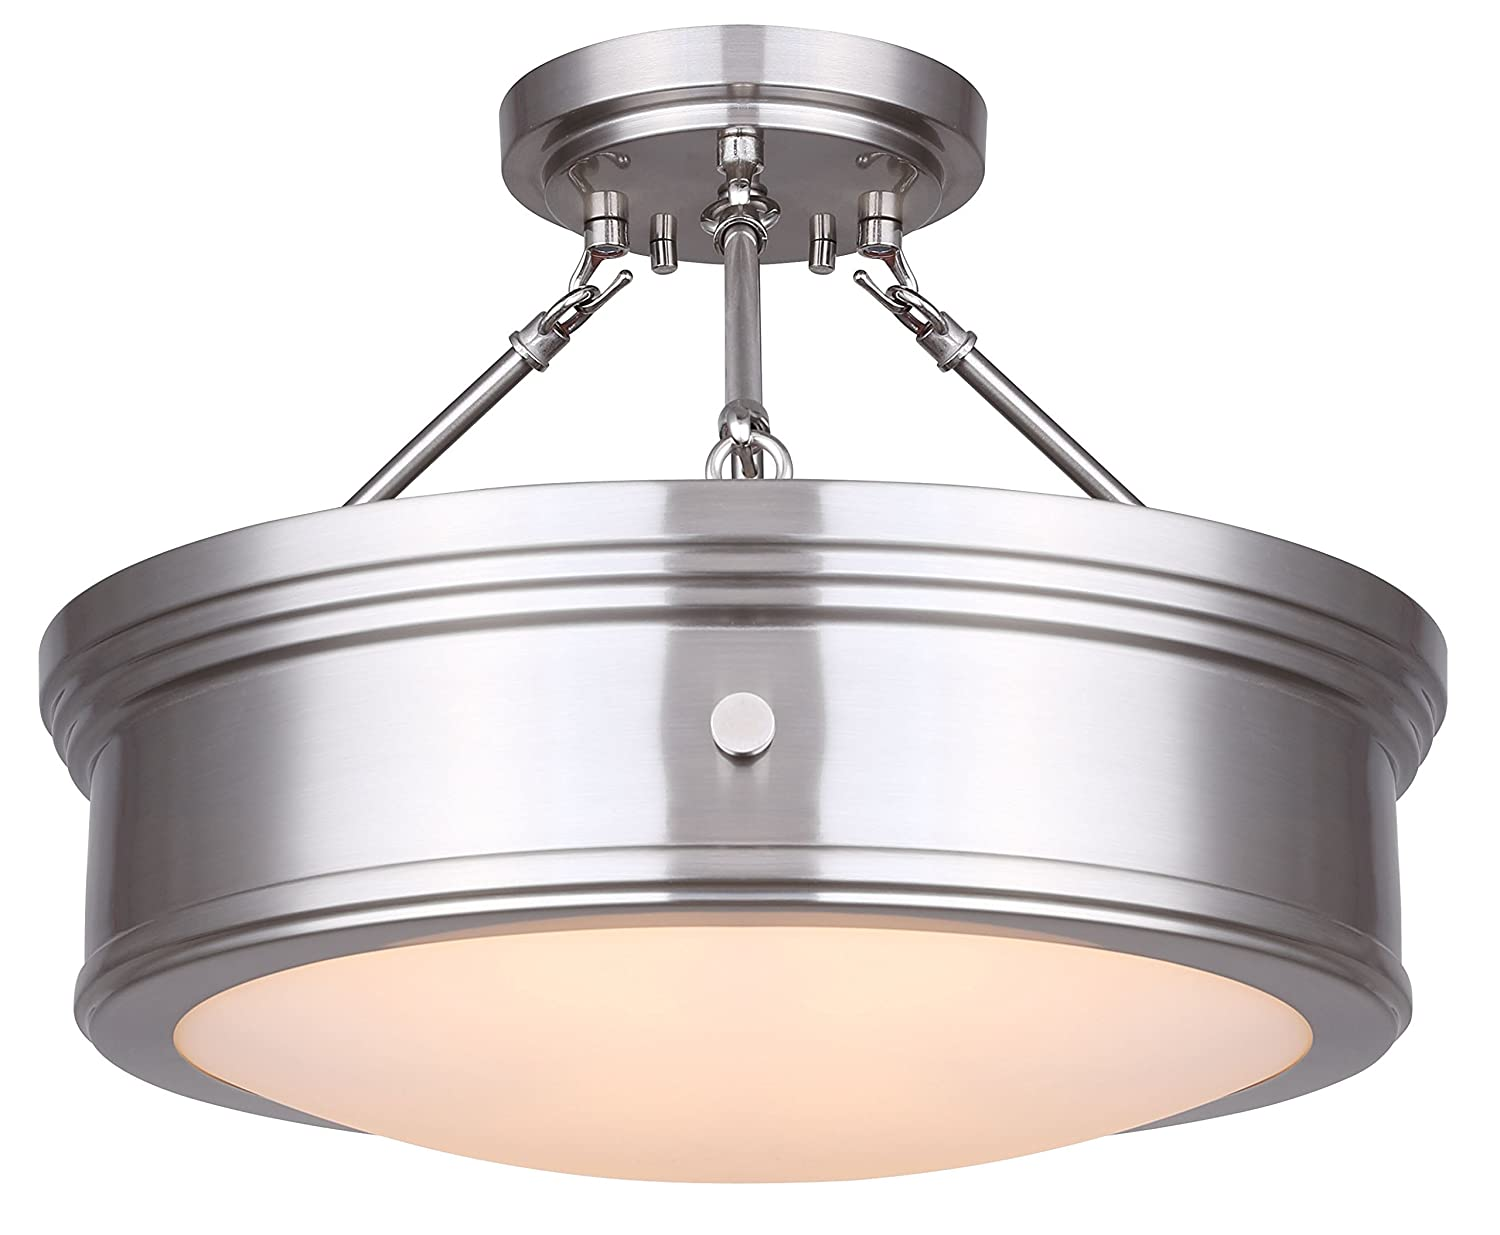 Back To Search Resultslights & Lighting Ceiling Lights & Fans Diligent Led Crystal Ceiling Lights Remote Dimming Flat Panel Lamp Living Room Bedroom Study Lights Indoor Home Fixtures Free Shipping